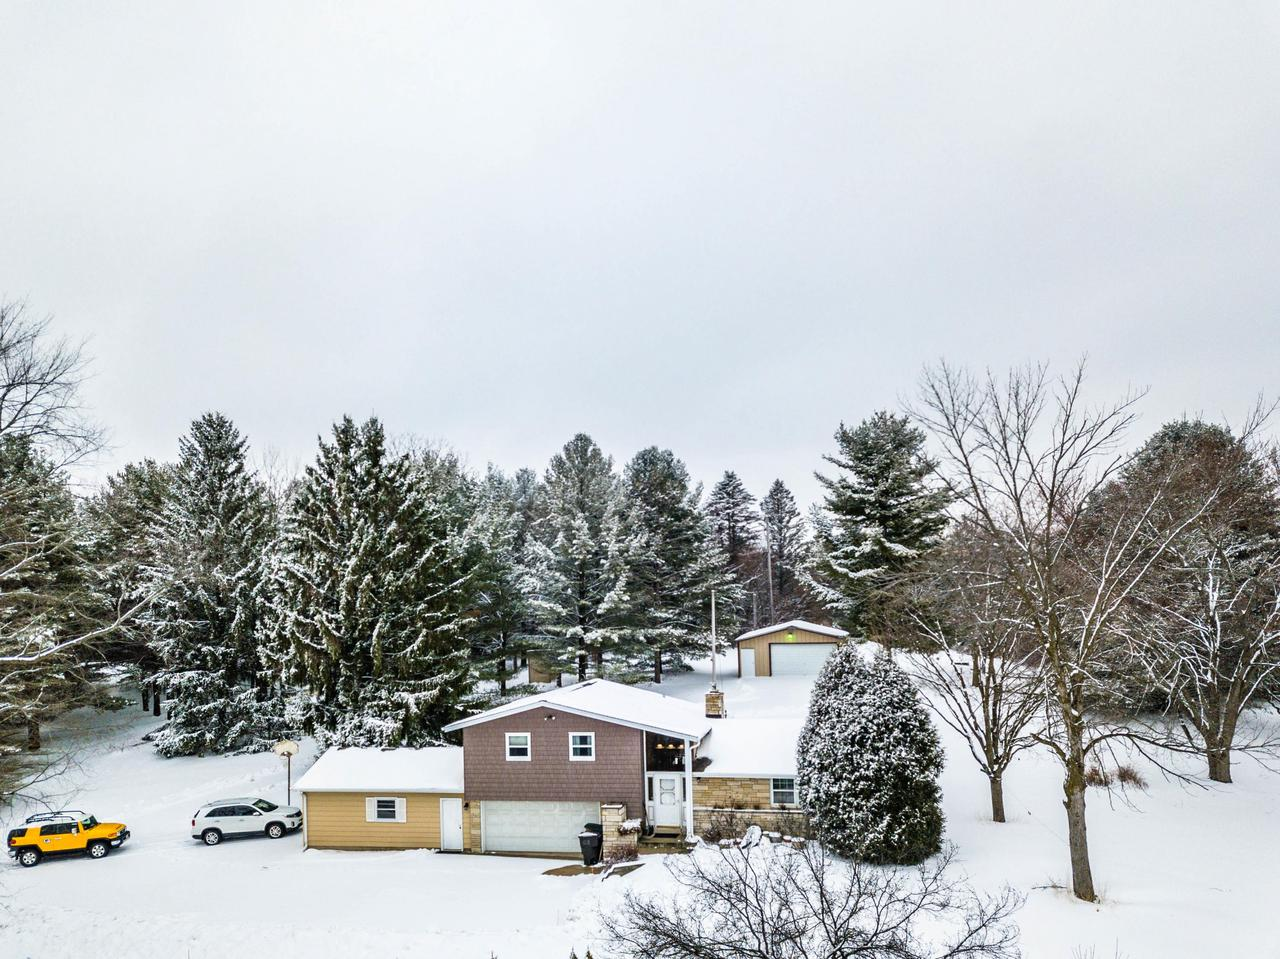 Don't miss this opportunity to own this 3 bedroom home set on a beautiful 5 acre park like lot in the town of Mukwonago.  Home features 2.5 car garage with lift for ATV's or other small toys, large air compressor.  26x27 outbuilding with electricity, plenty of room for horses, wood burning stove in basement,  new septic system 2014, new furnace 2012, new roof 2010.  This home will not last long.  Schedule your showing today.